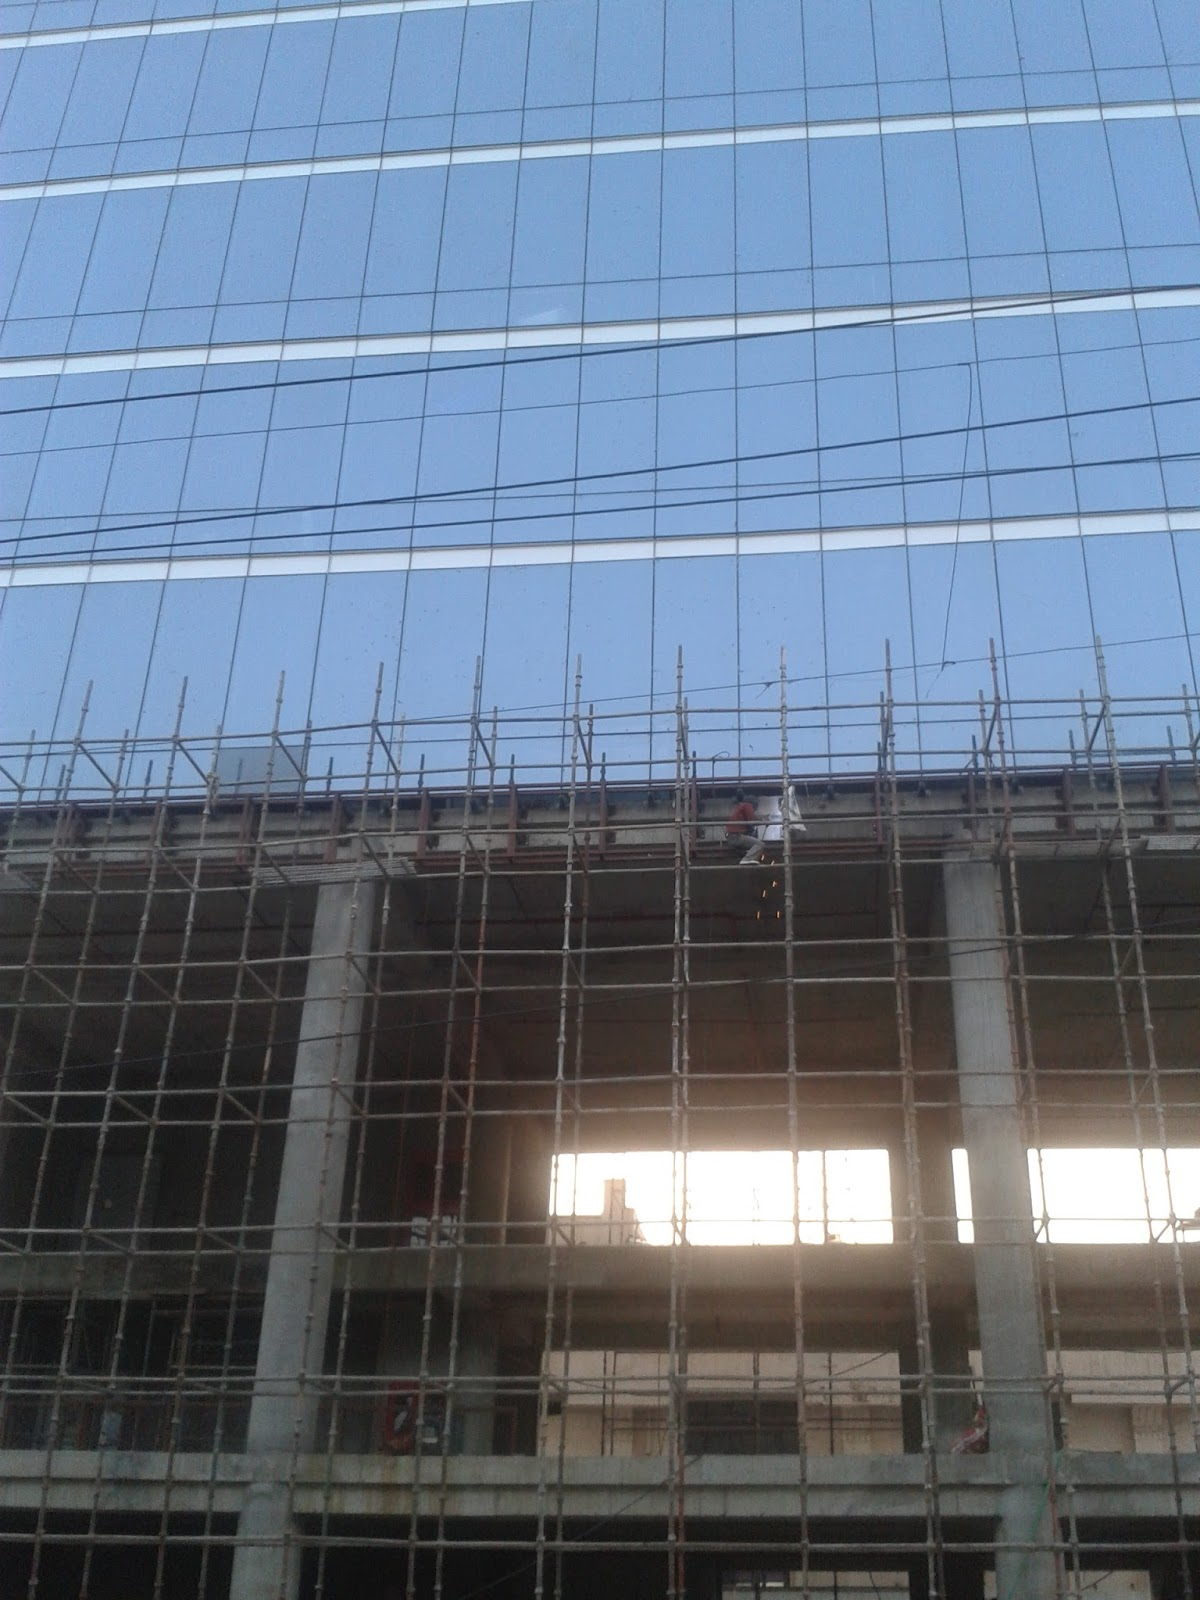 Khan Acp cladding and Structural Glazing